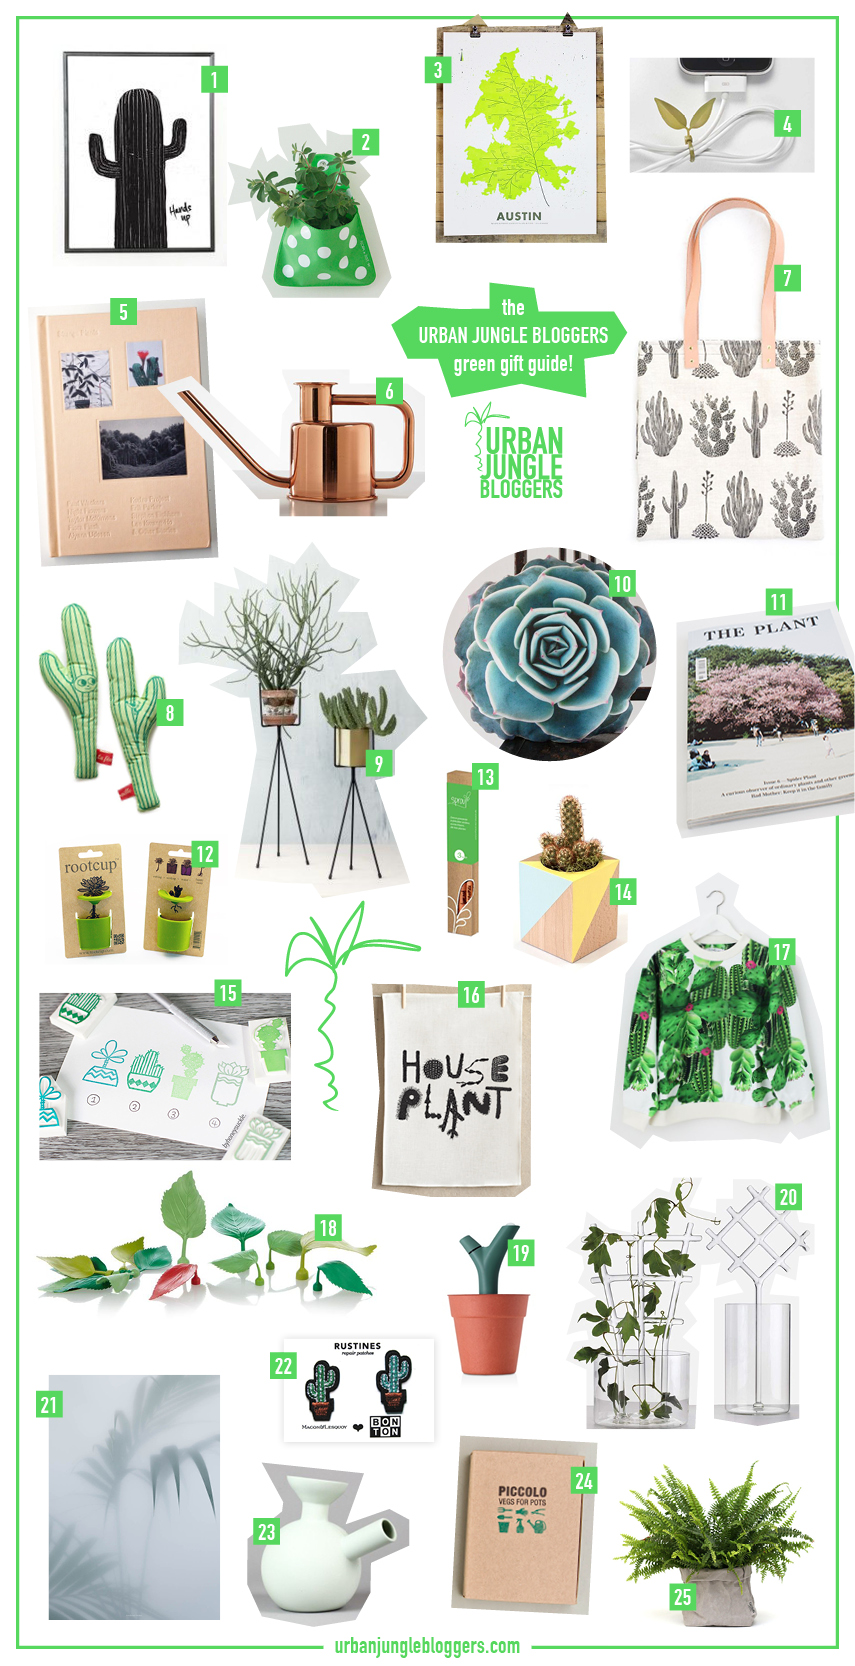 Urban Jungle Bloggers green gift guide